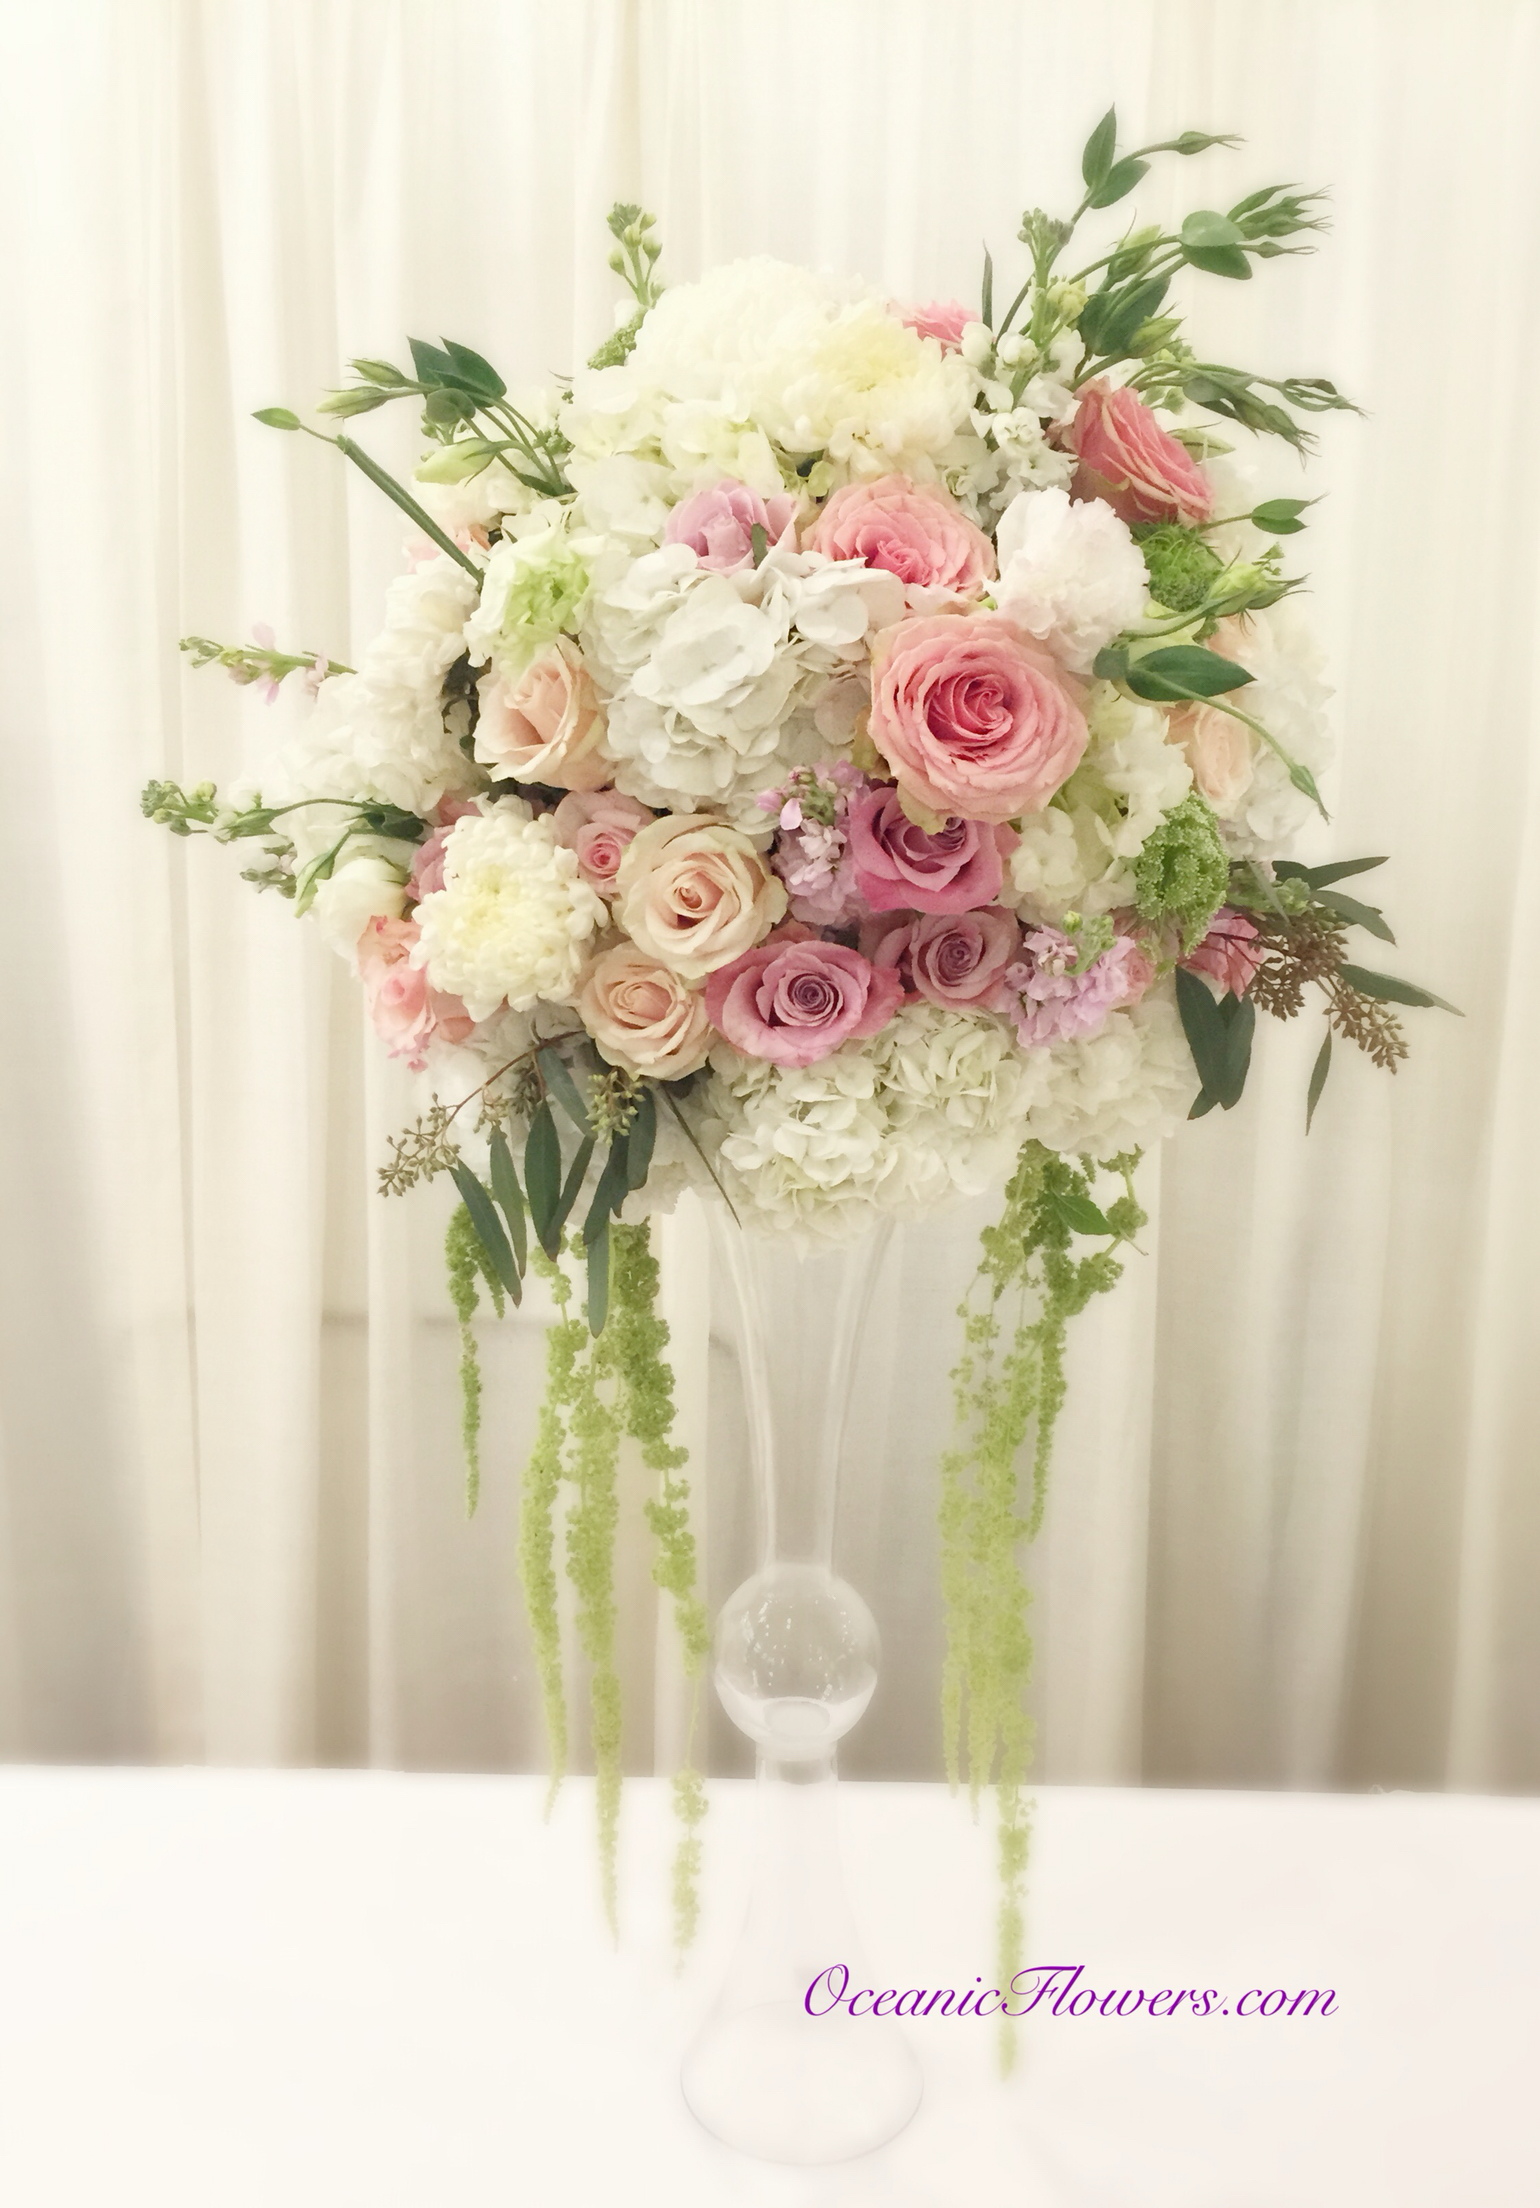 Free Photo Pink And White Rose Flower Arrangement In Vase